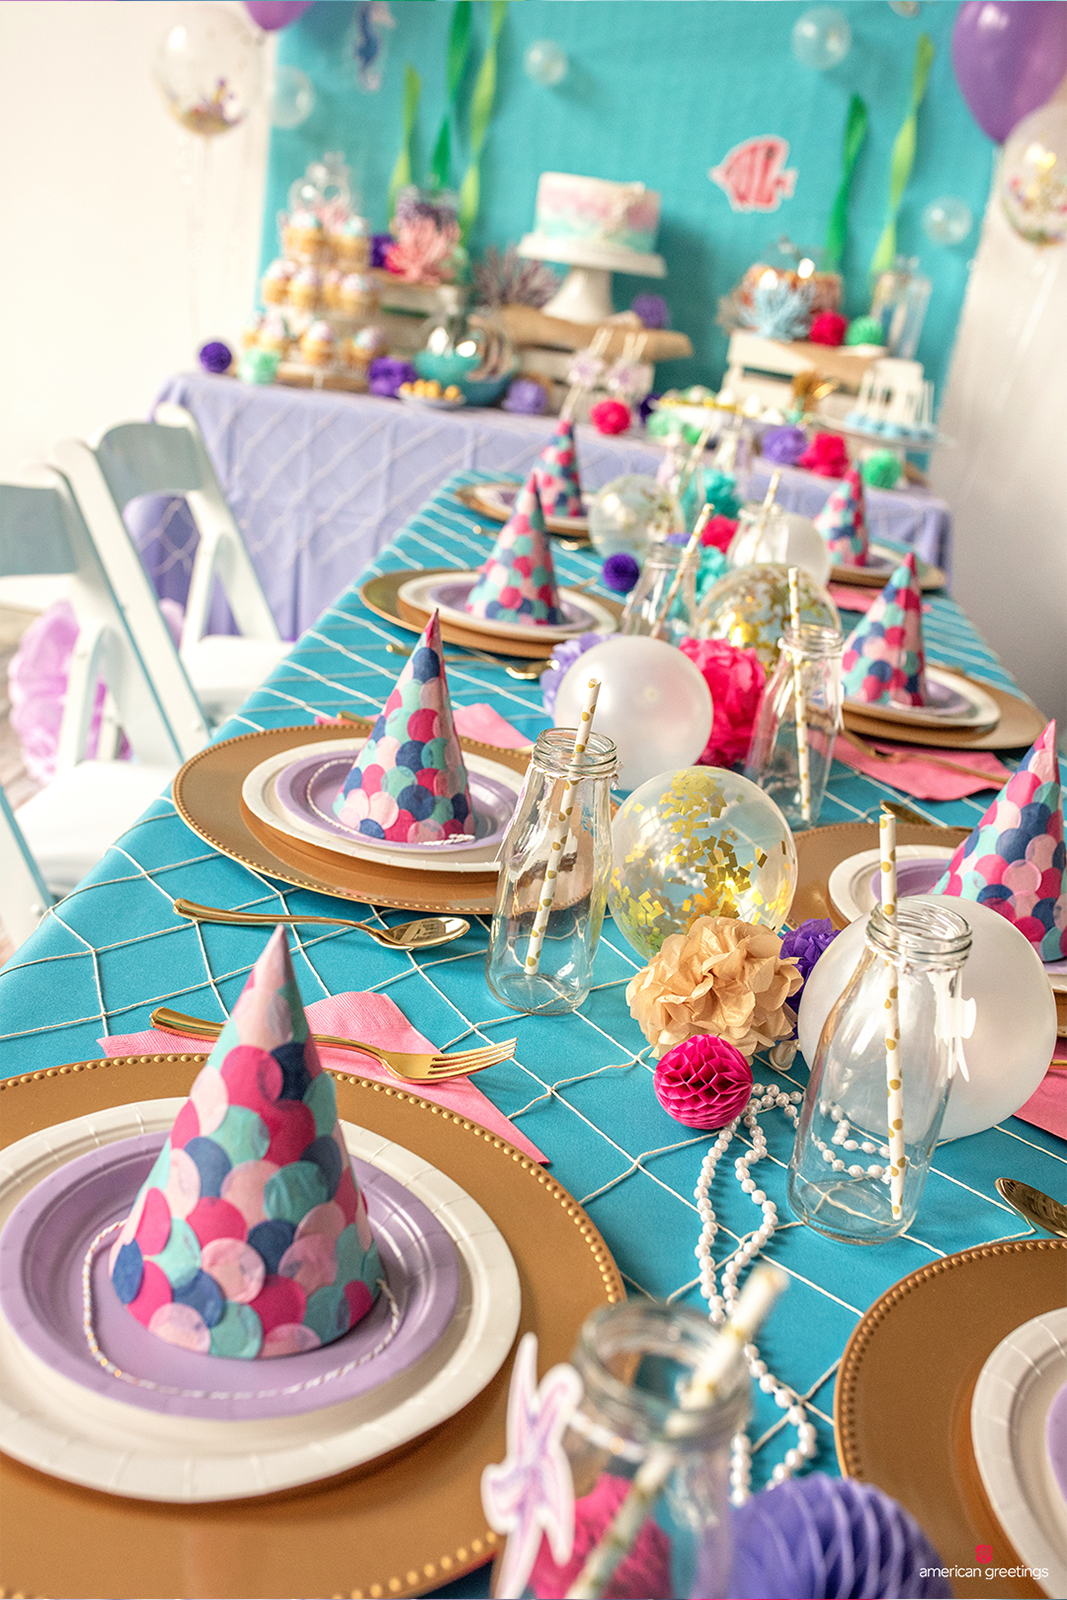 Dining table decorated with mini balloons to represent bubbles and pearls, confetti-filled balloons, pom-poms and mini honeycombs.